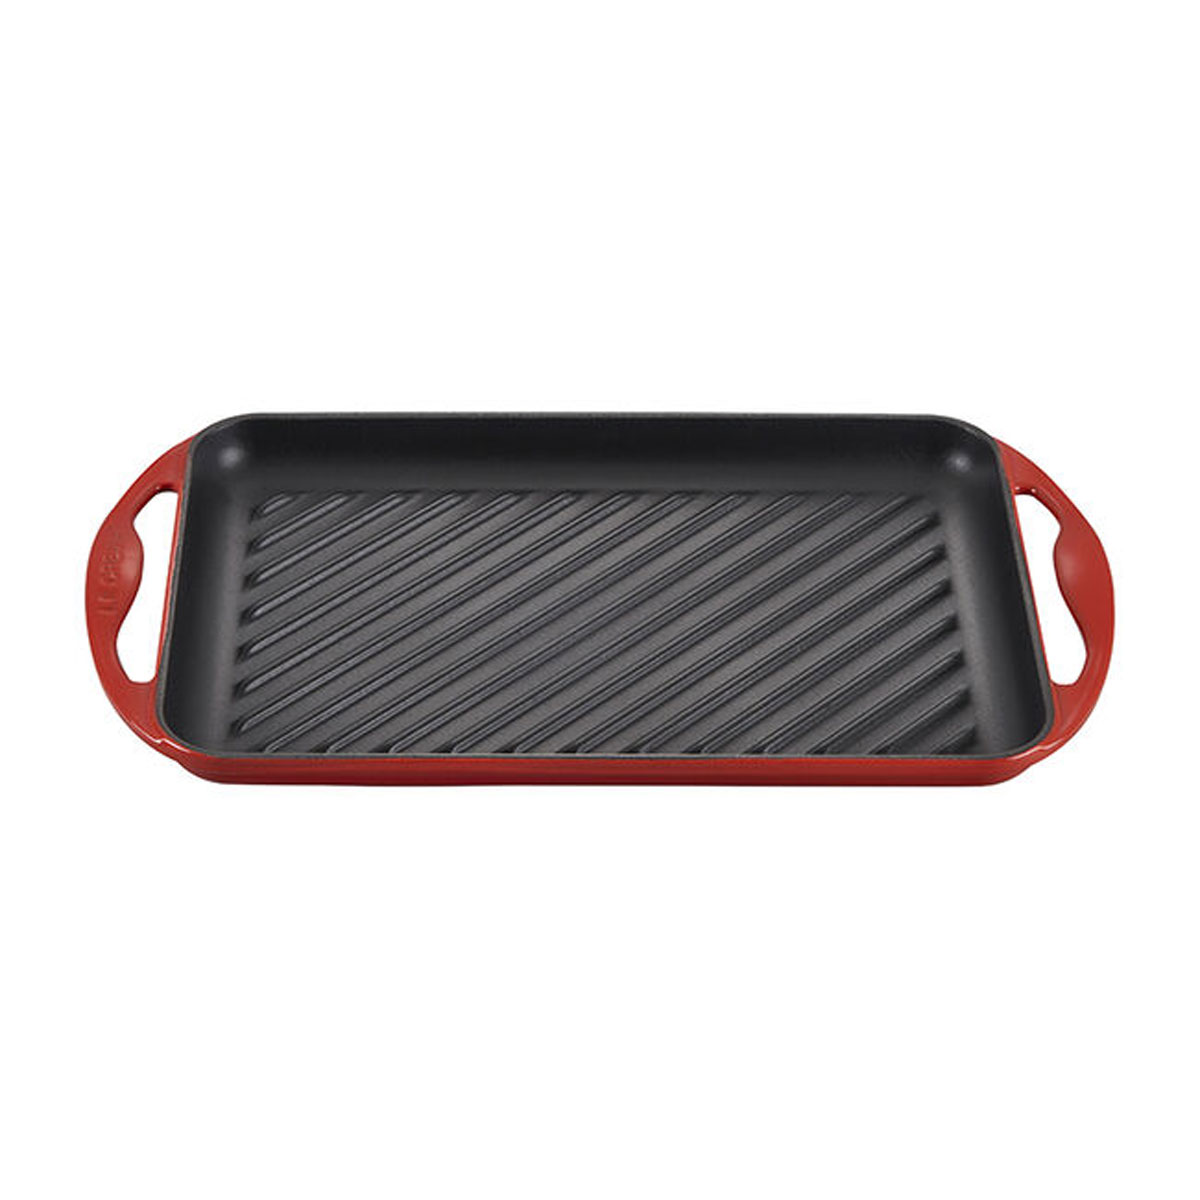 Le Creuset rectangle grill pan